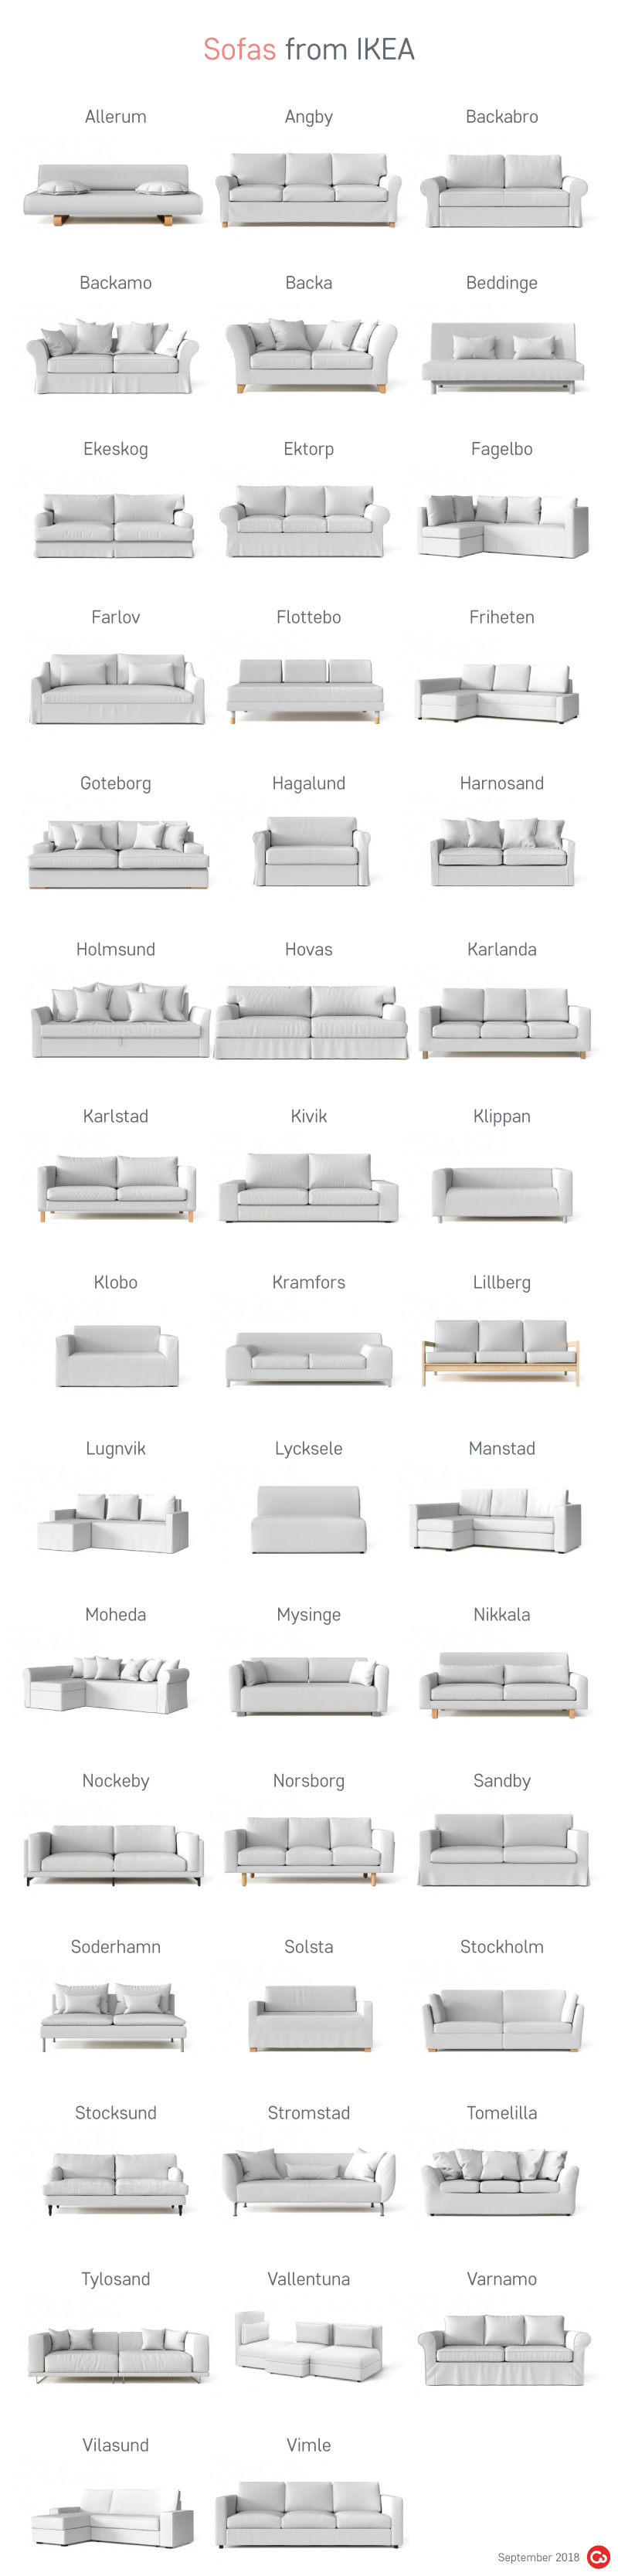 Sofa Ikea Replacement Ikea Sofa Covers For Discontinued Ikea Couch Models